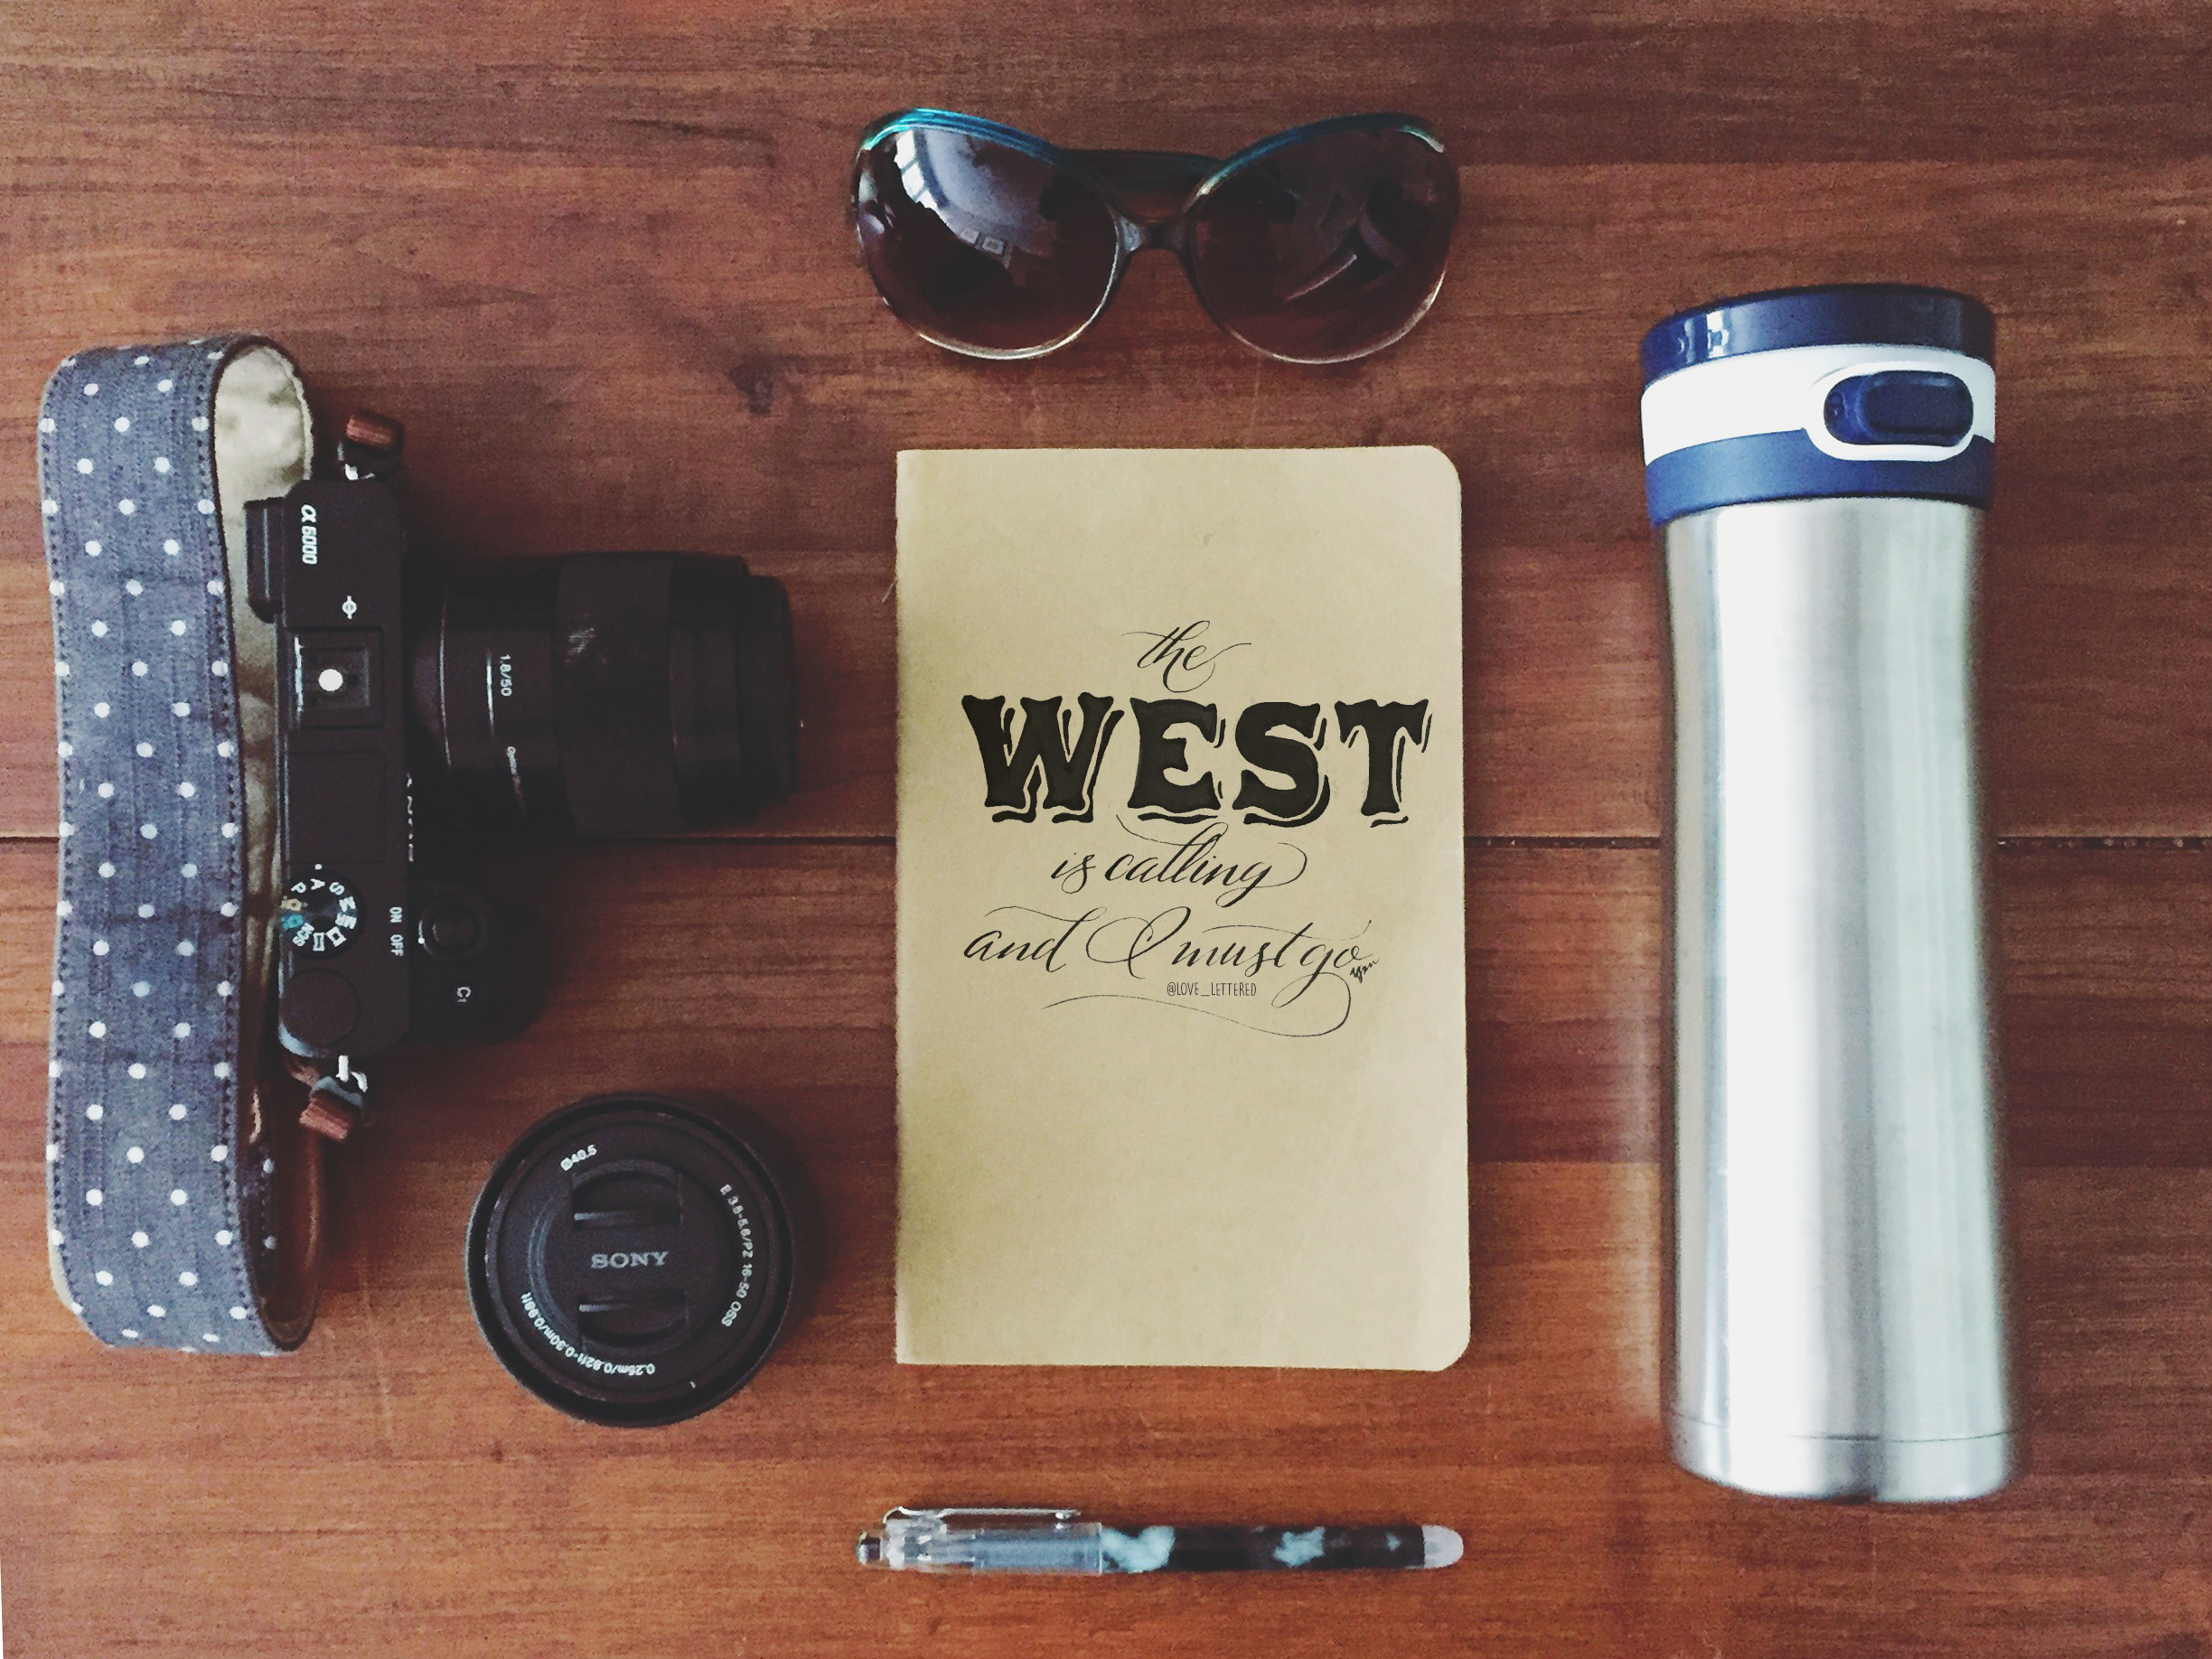 The west is calling, and I must go. #adventureisoutthere